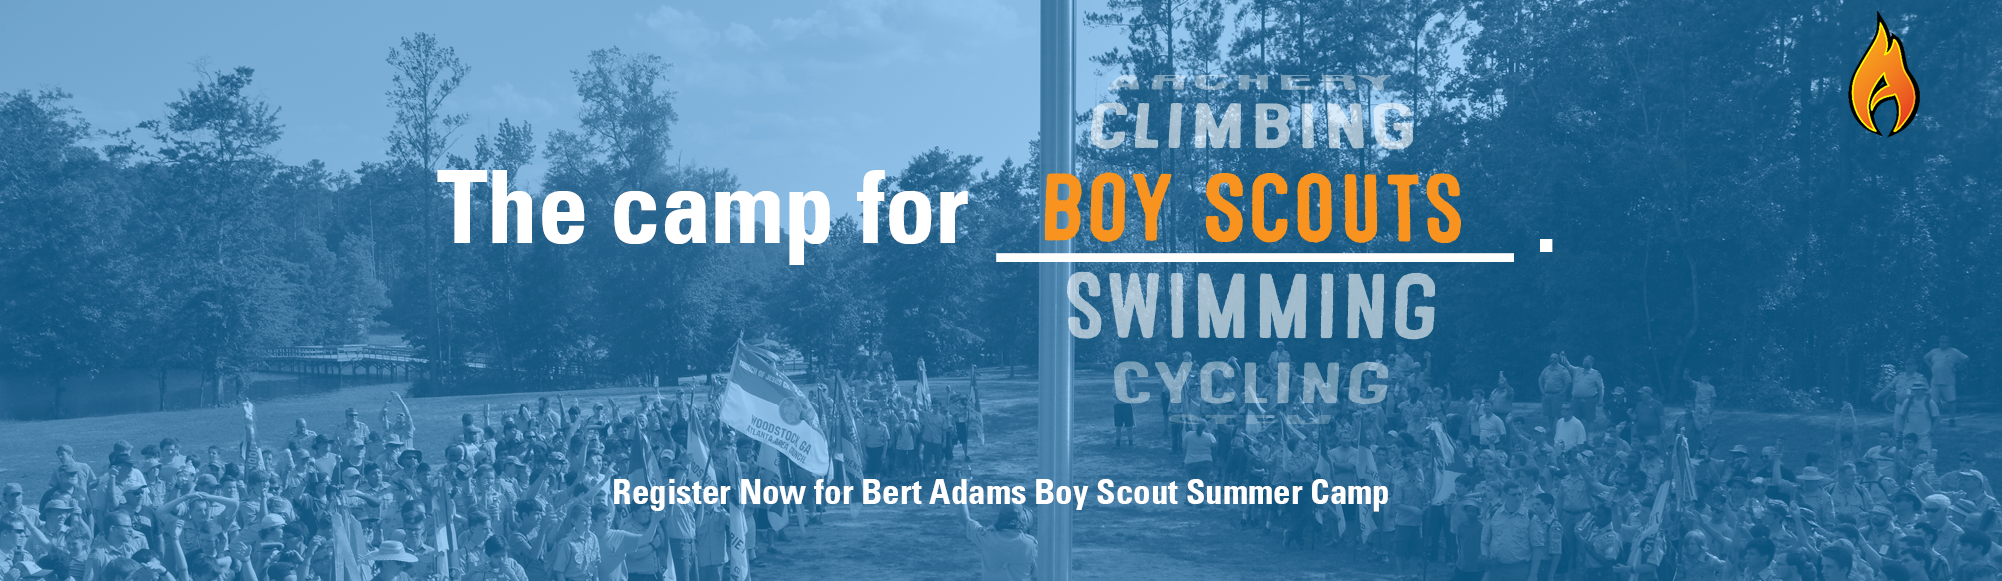 Register for Boy Scout Summer Camp